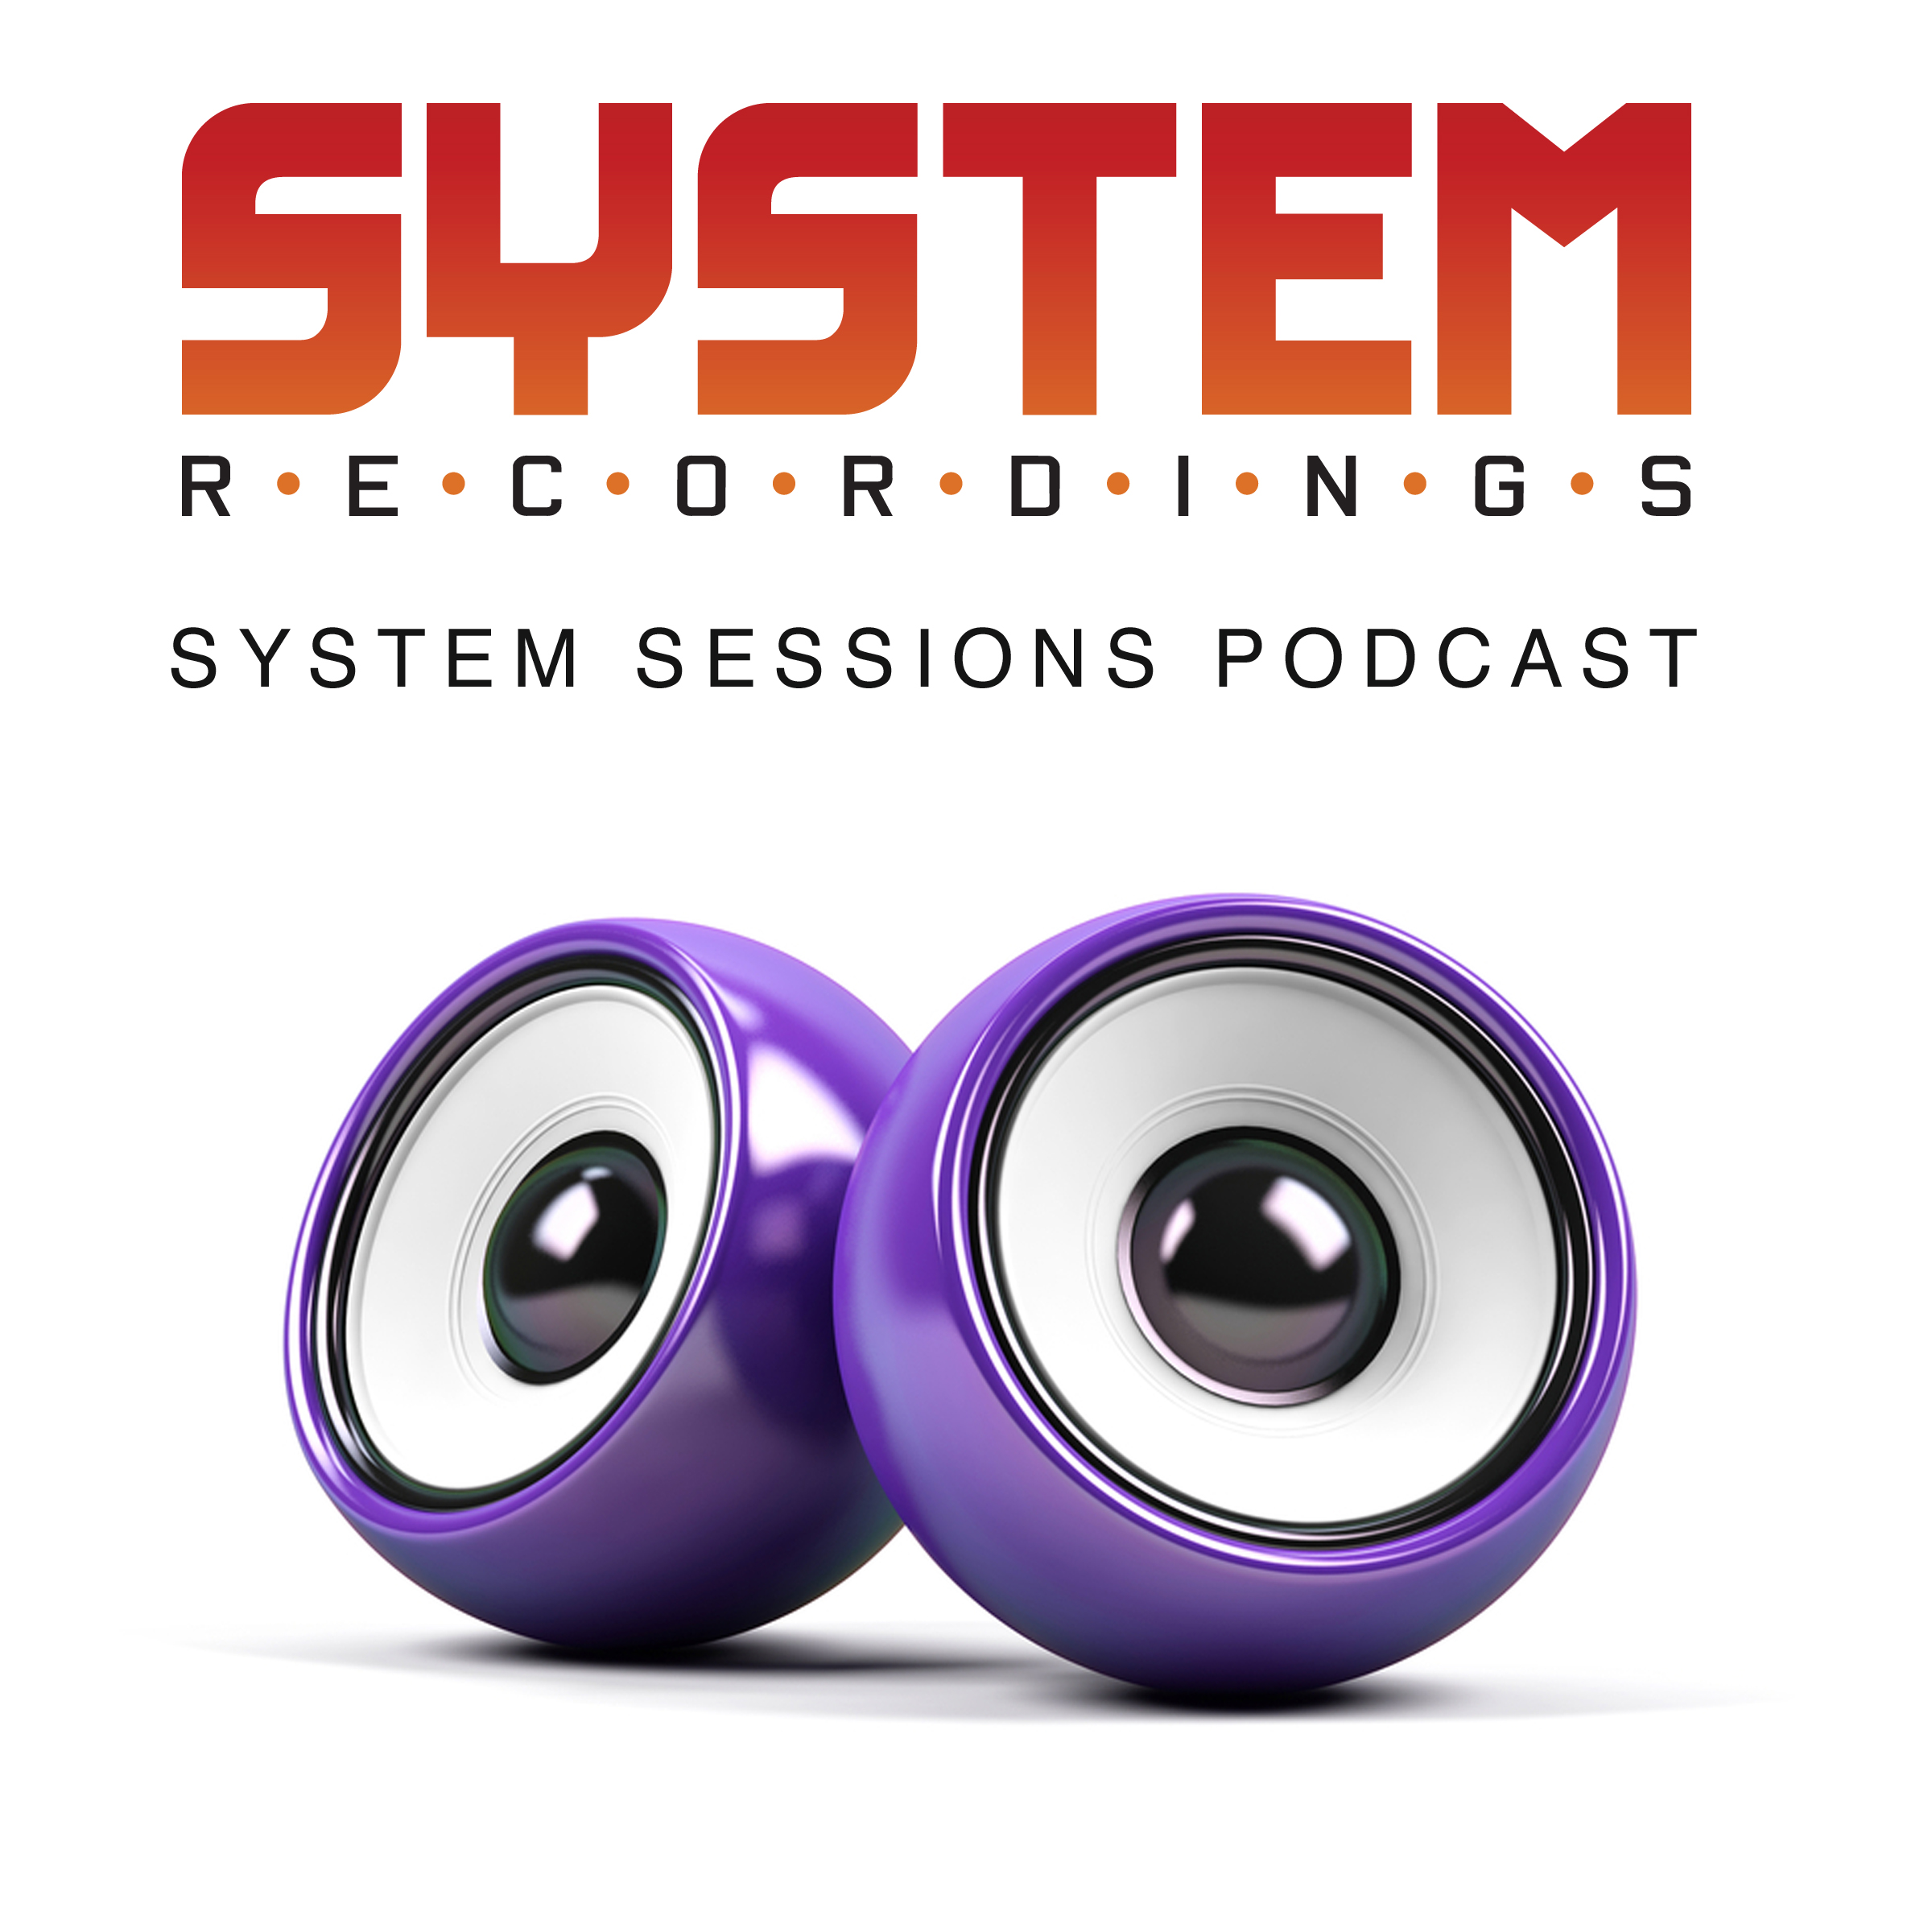 System Recordings Podcast